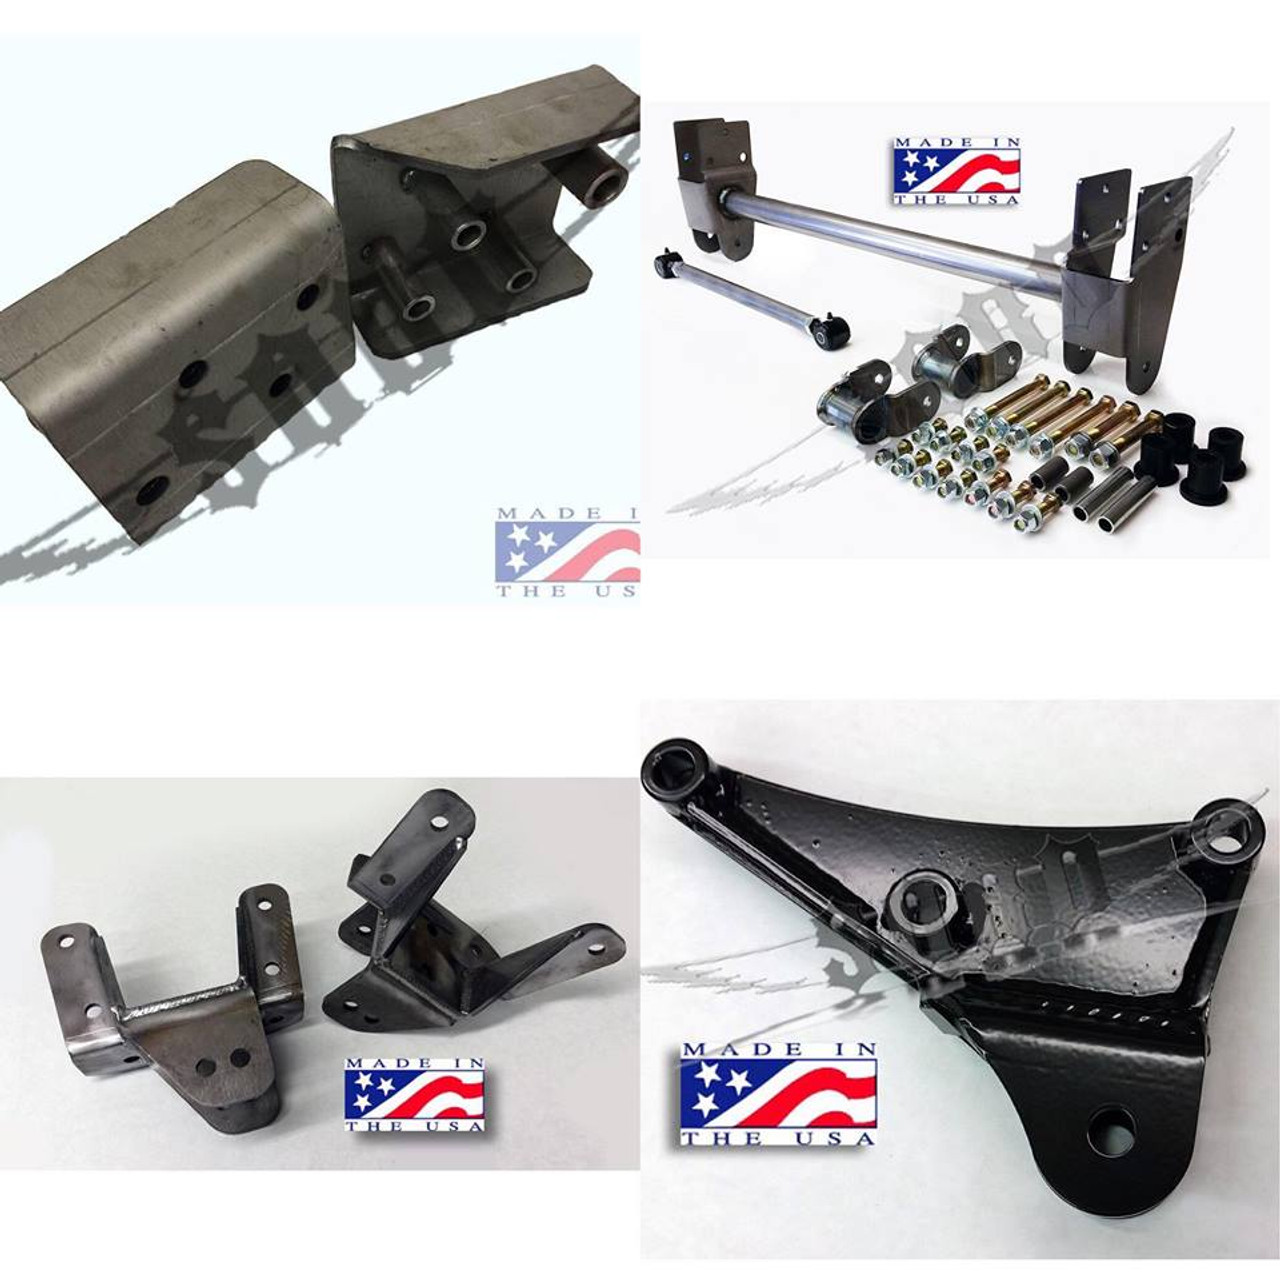 2wd to 4wd Conversion Kit for OBS Dana 60 Axle